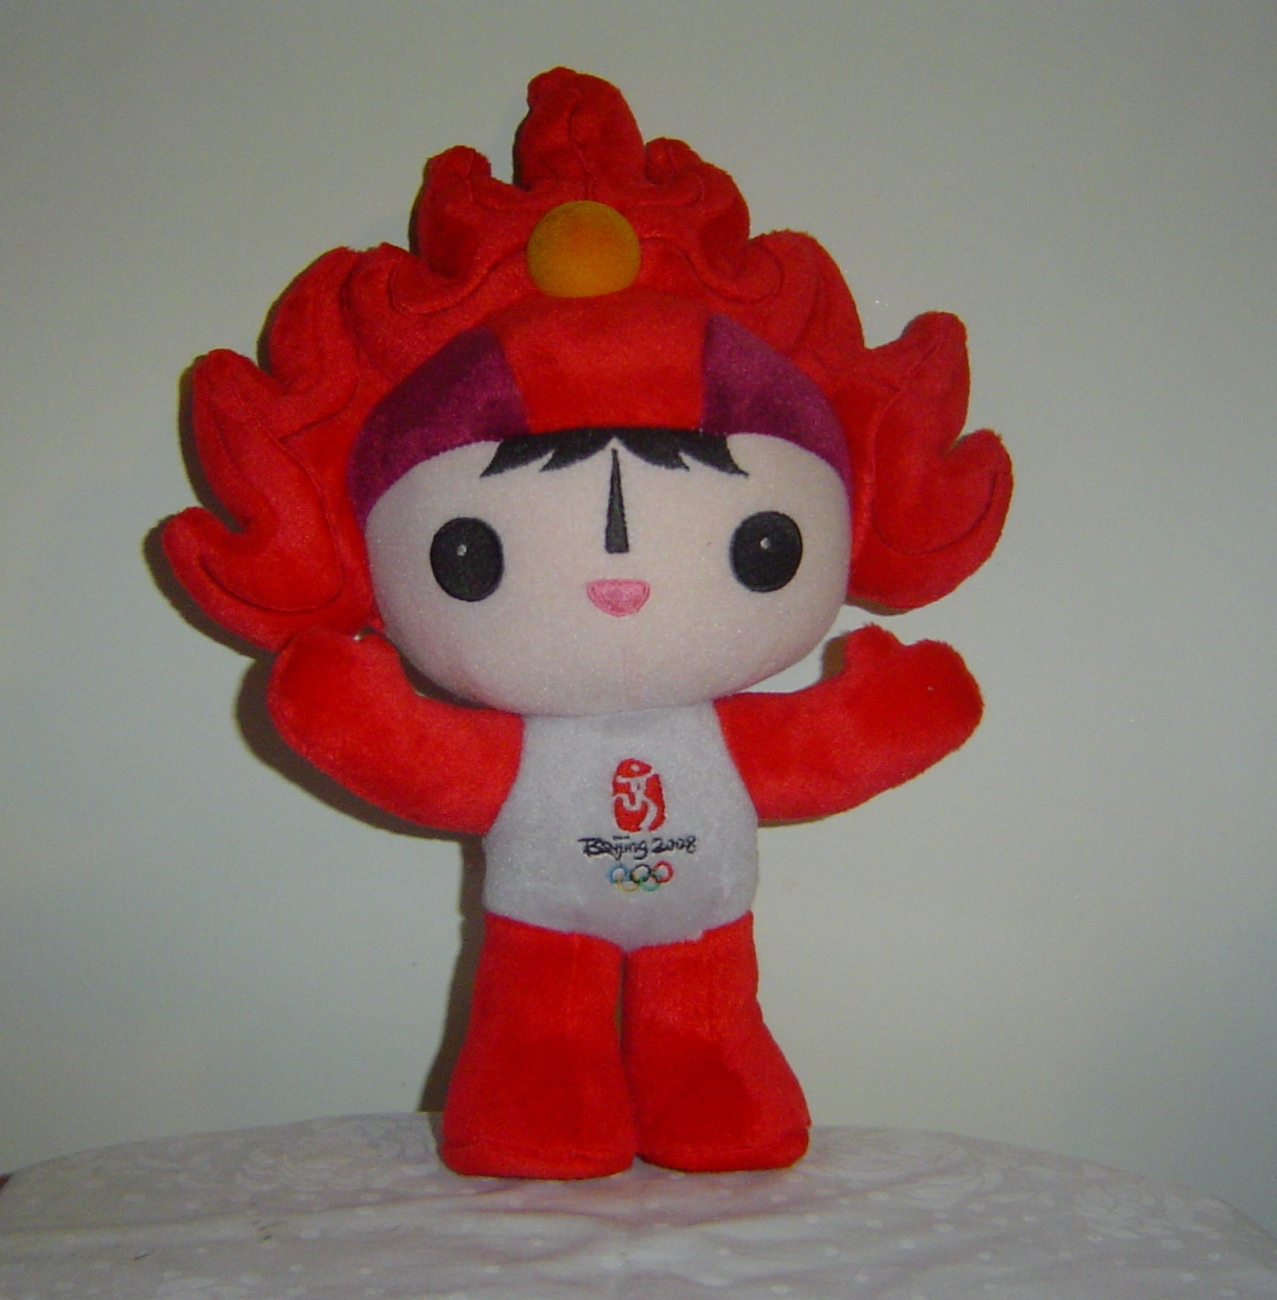 Bejing_mascots_009